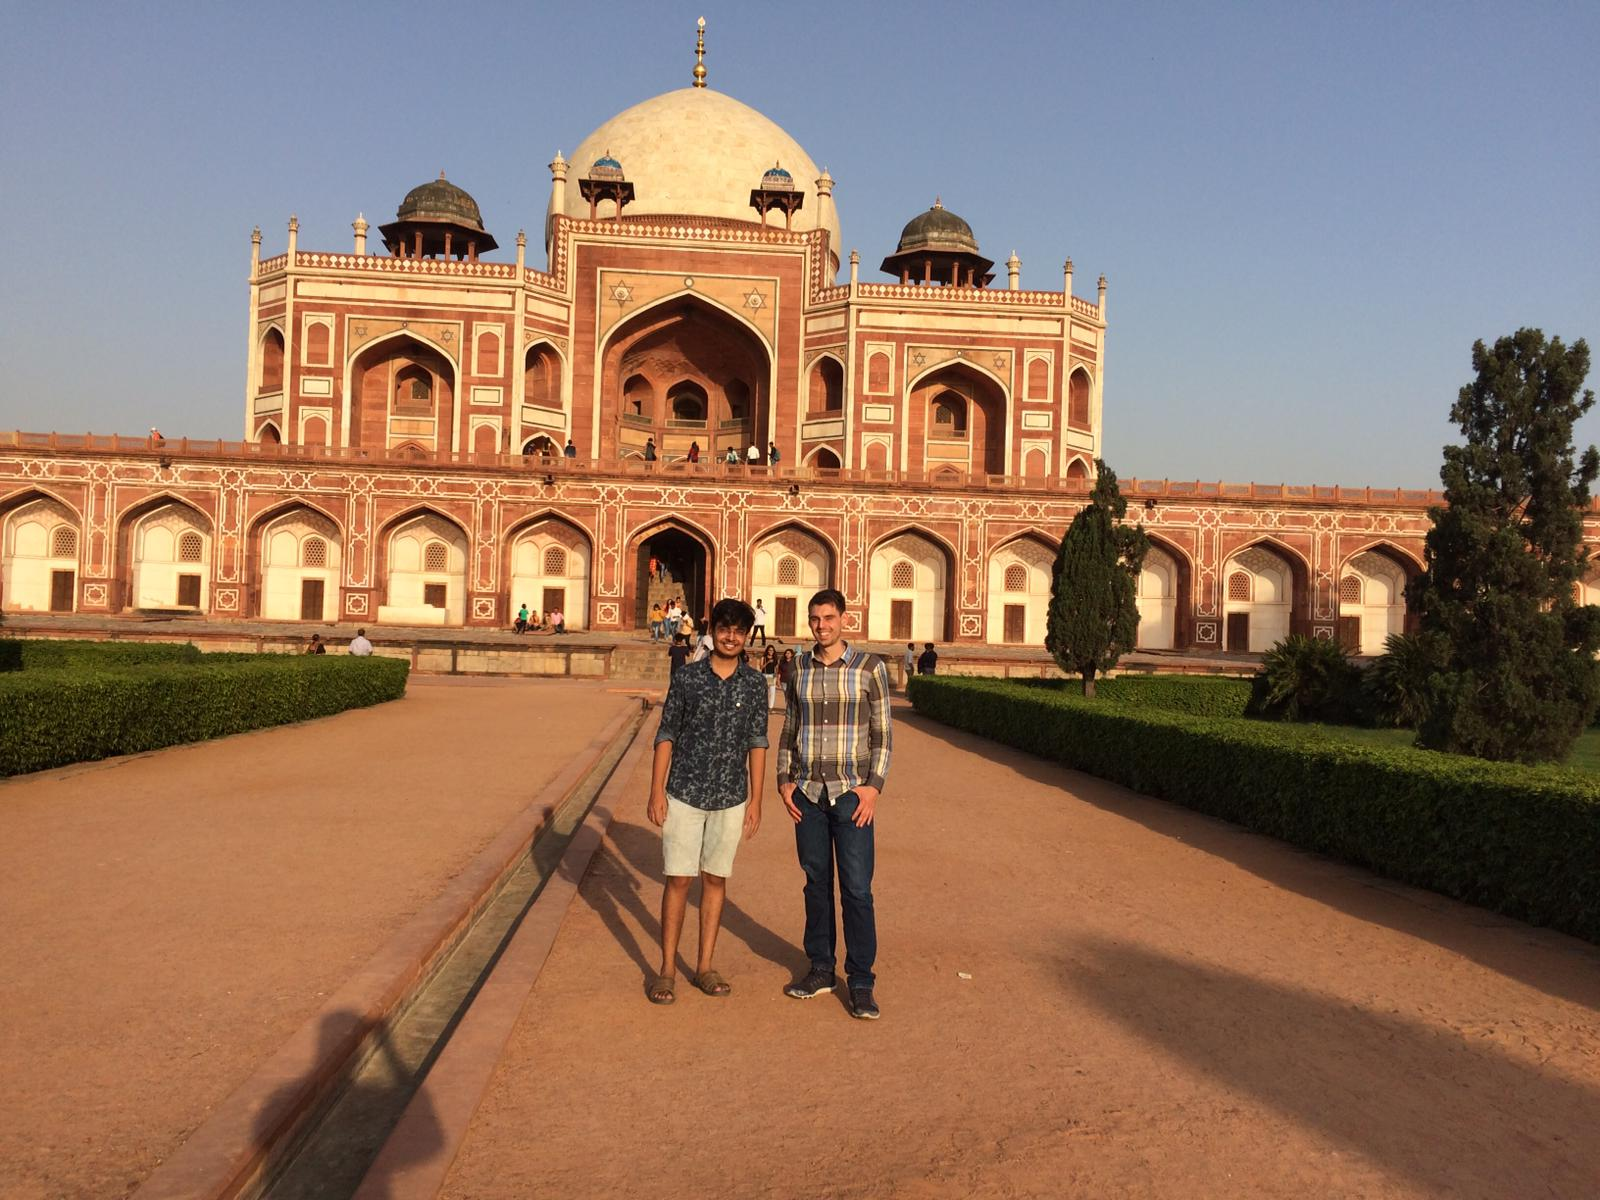 Two researchers from the technical faculties at Friedrich-Alexander-Universität Erlangen-Nürnberg and the Indian Institute of Technology Delhi visiting Humayun's Tomb.